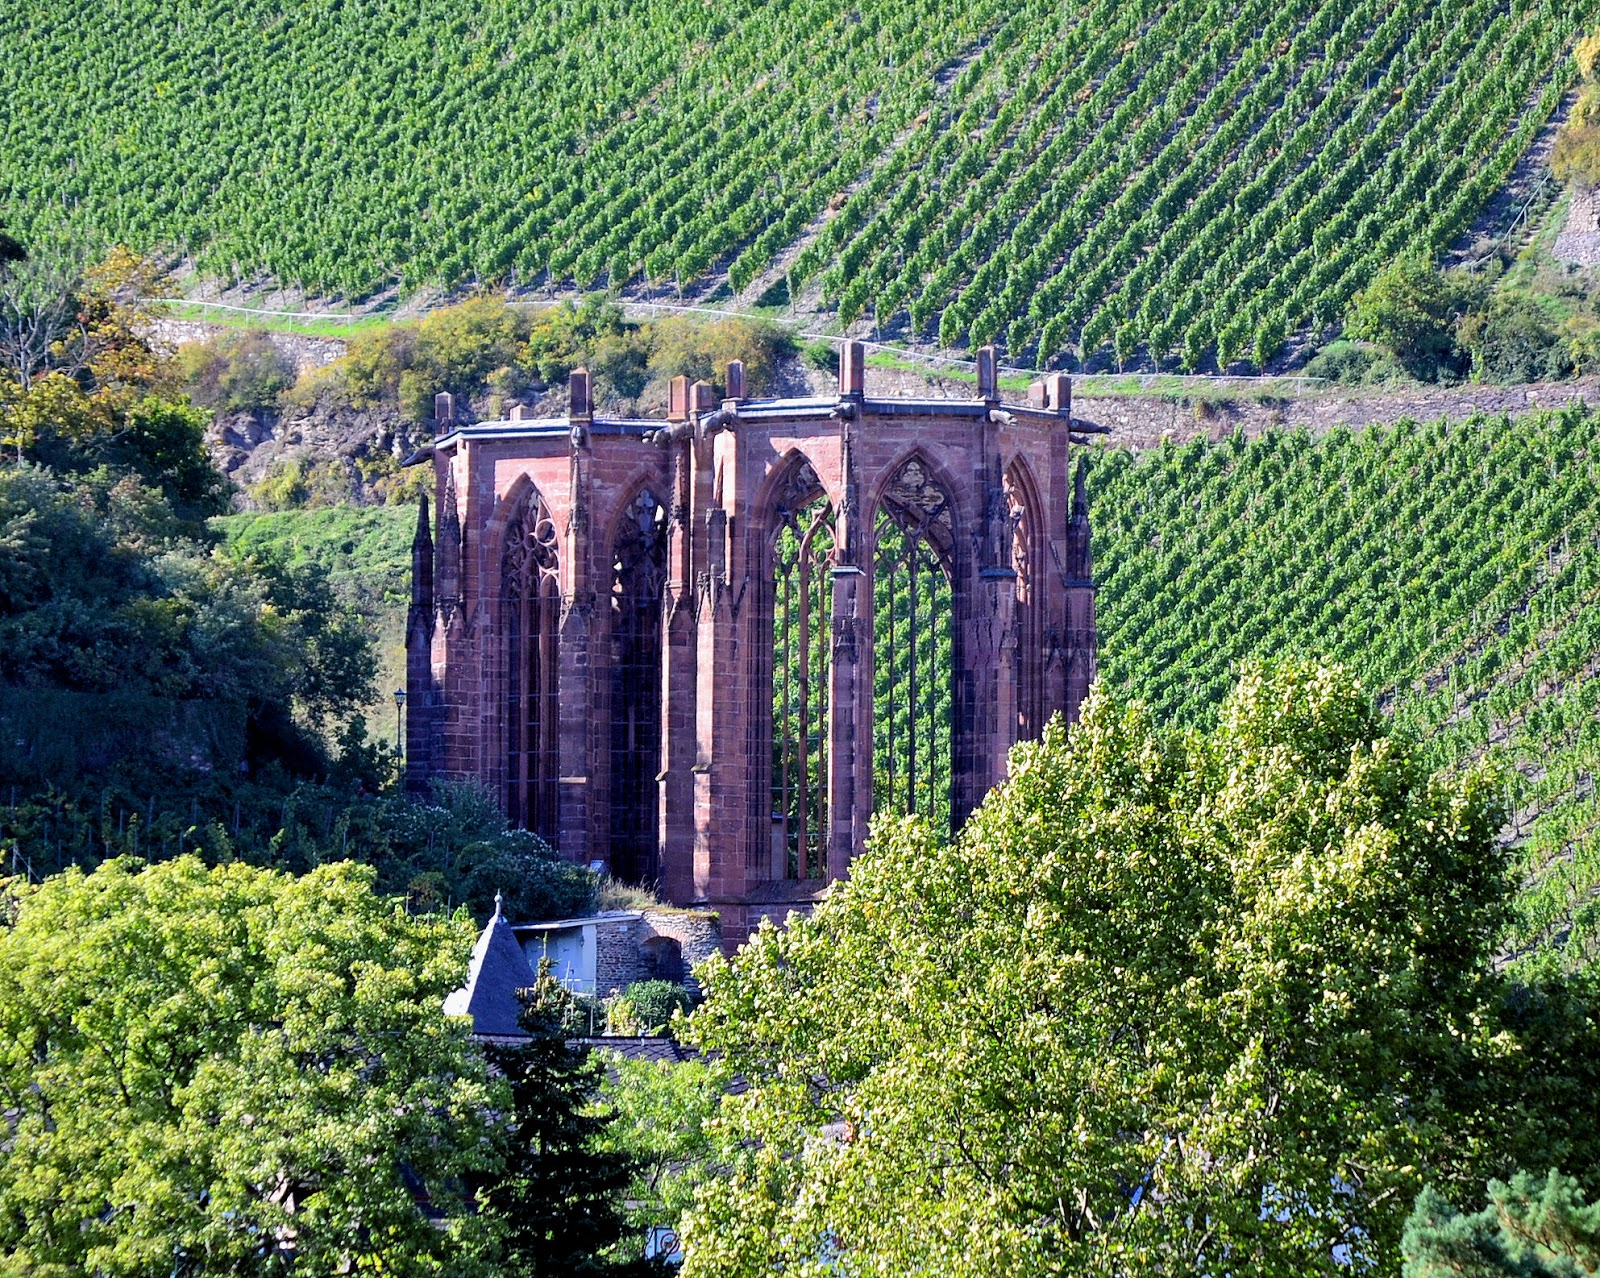 Werner Chapel ruins serve as a reminder of darker times in the 13th century when the unexplained death of a 16-year-old boy led to the persecution of Jews in 13th century.